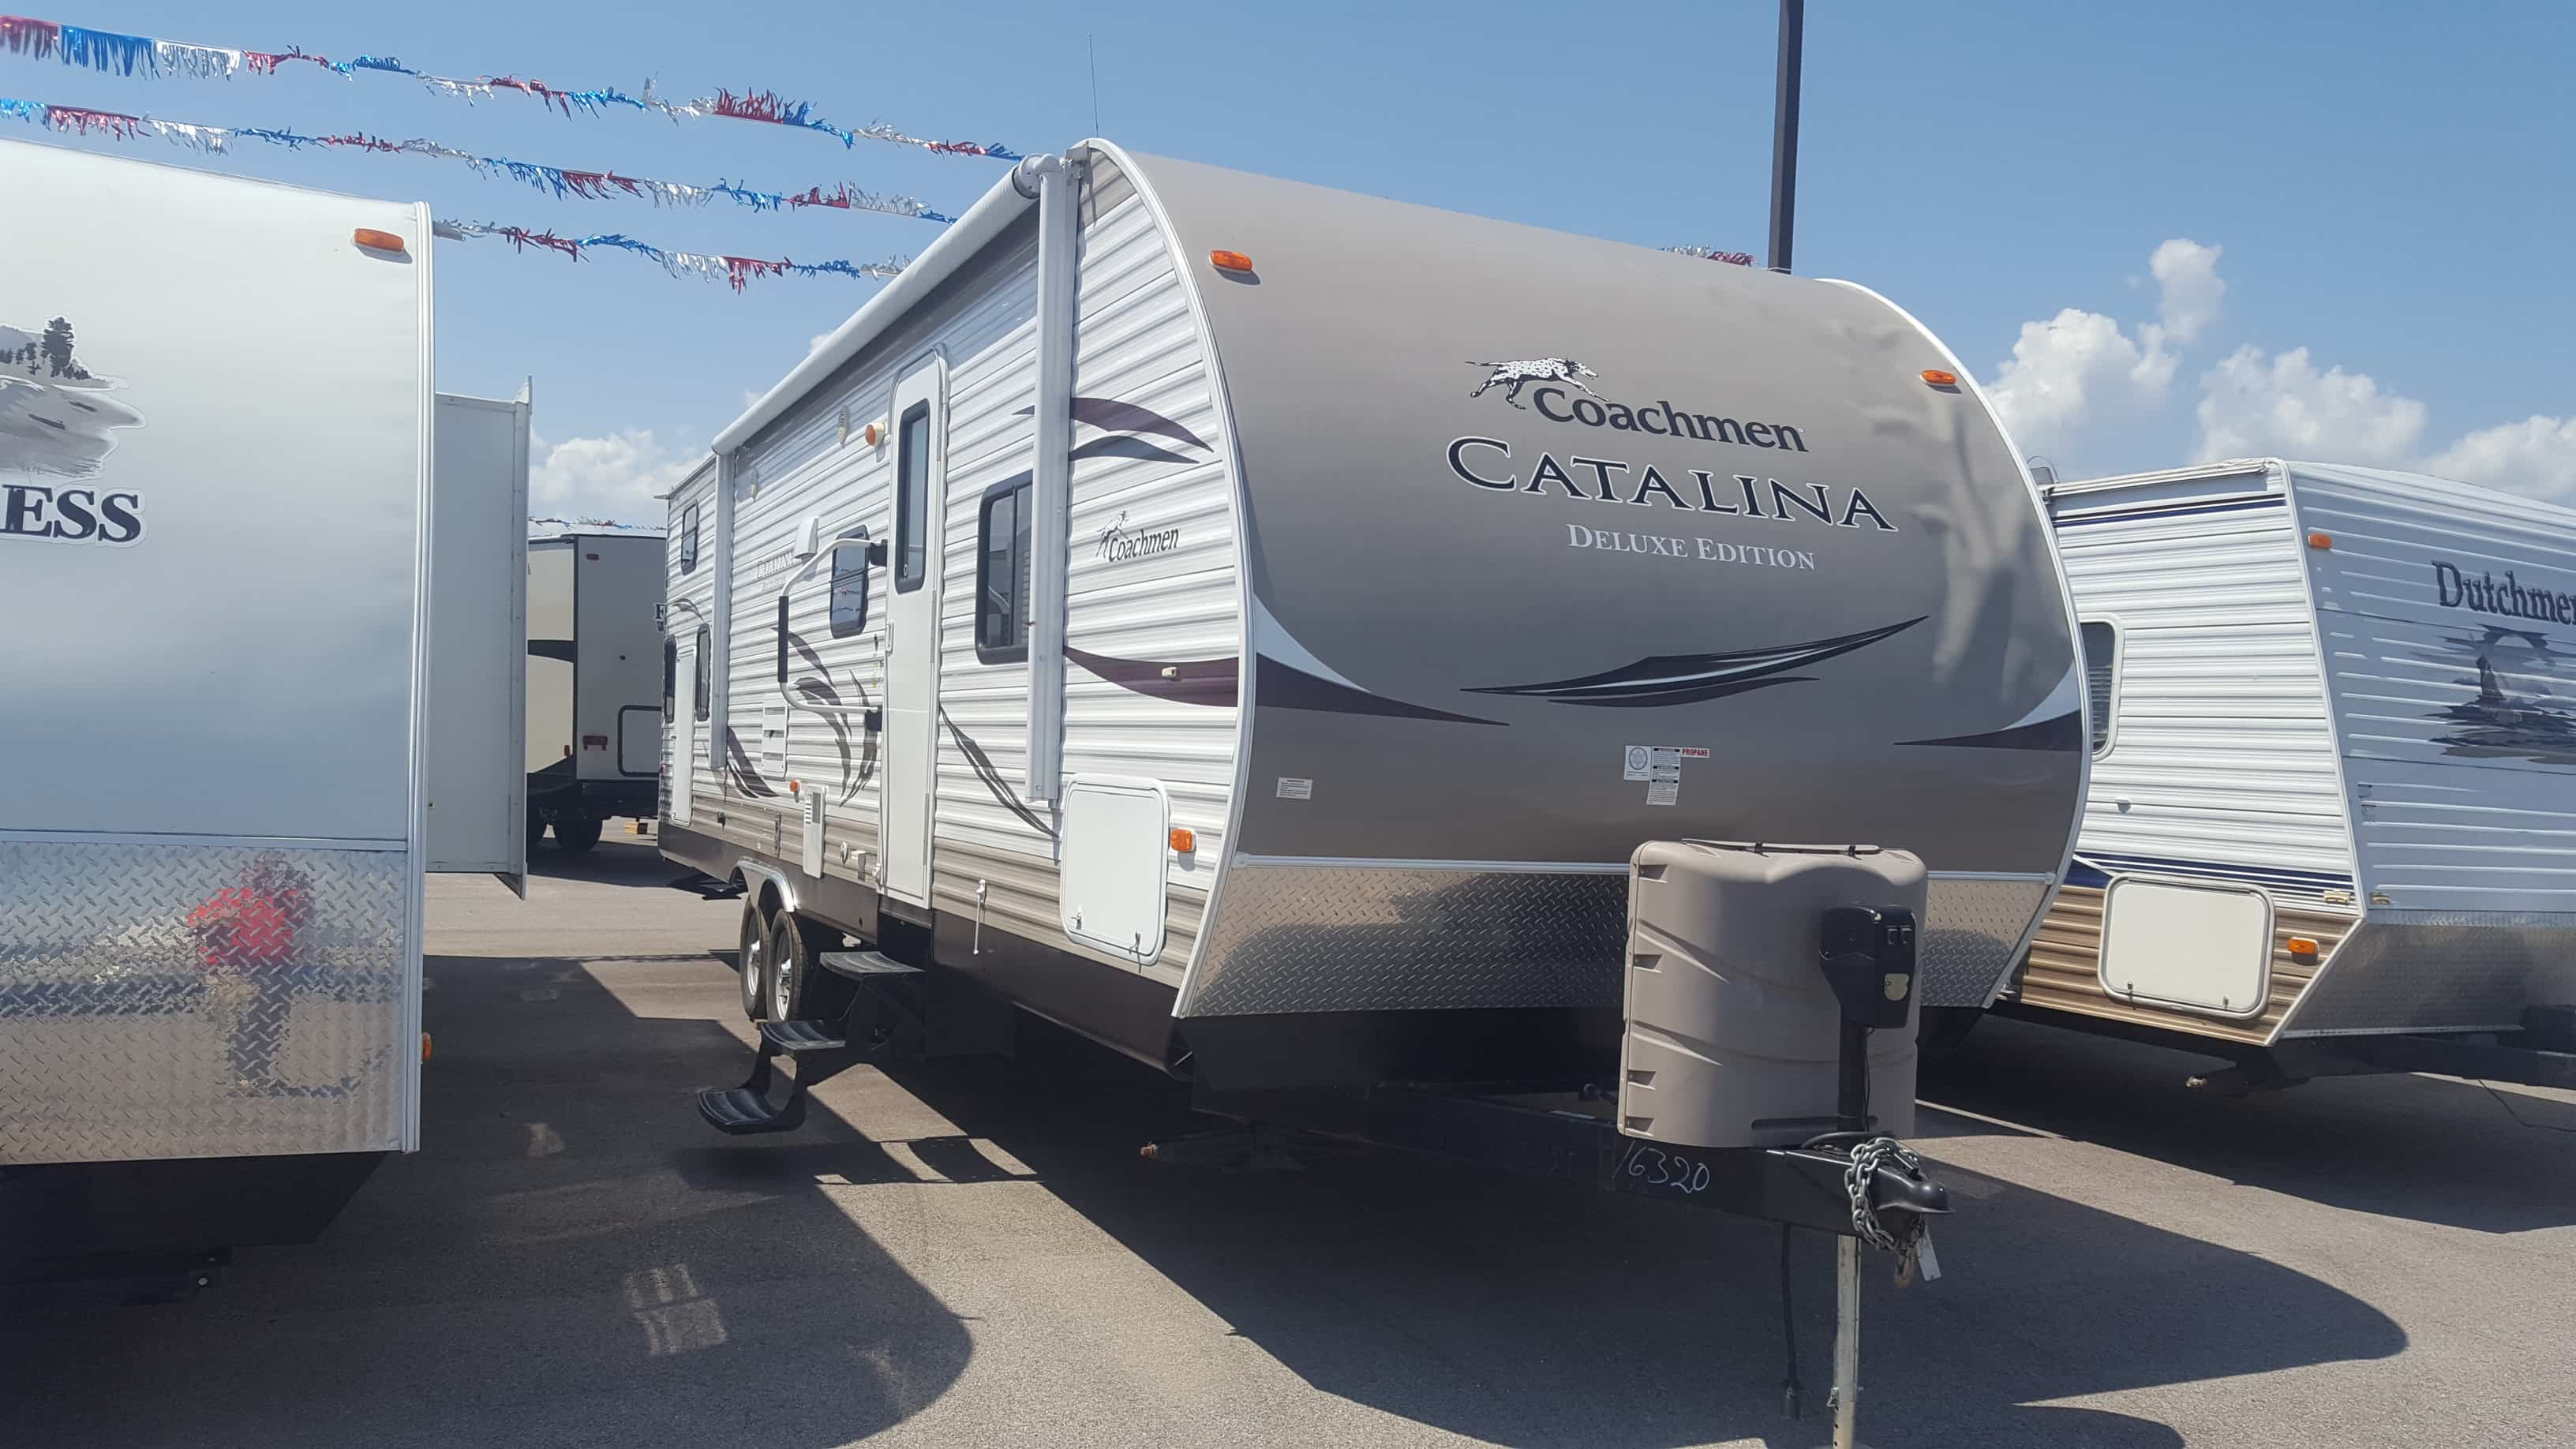 USED 2013 Coachmen CATALINA 30BHS - American RV